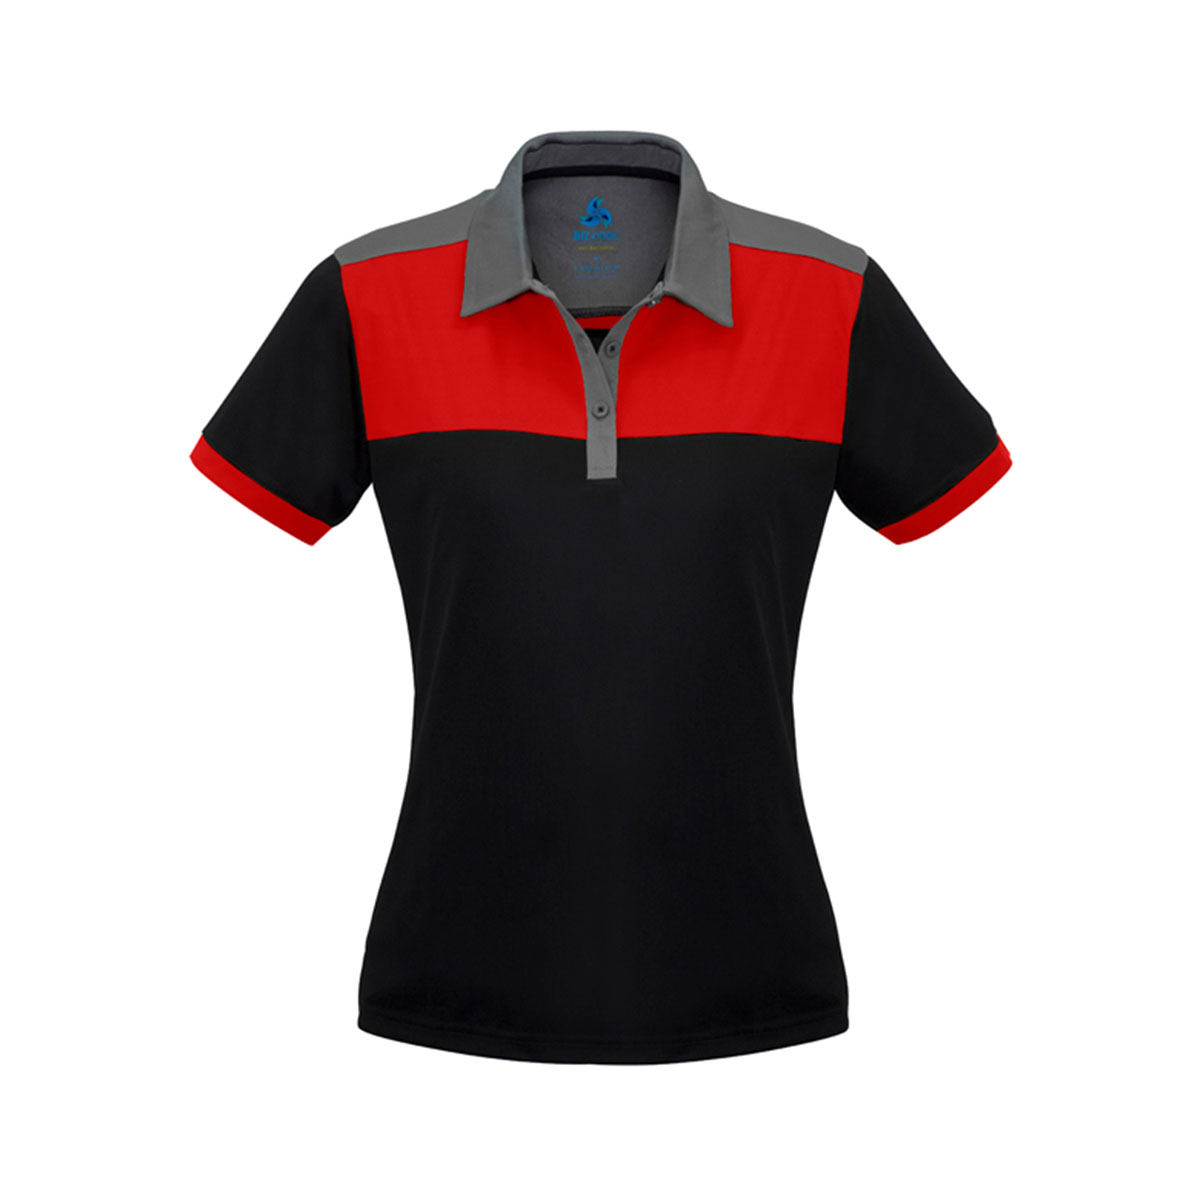 Ladies Charger Polo-Black / Red / Grey